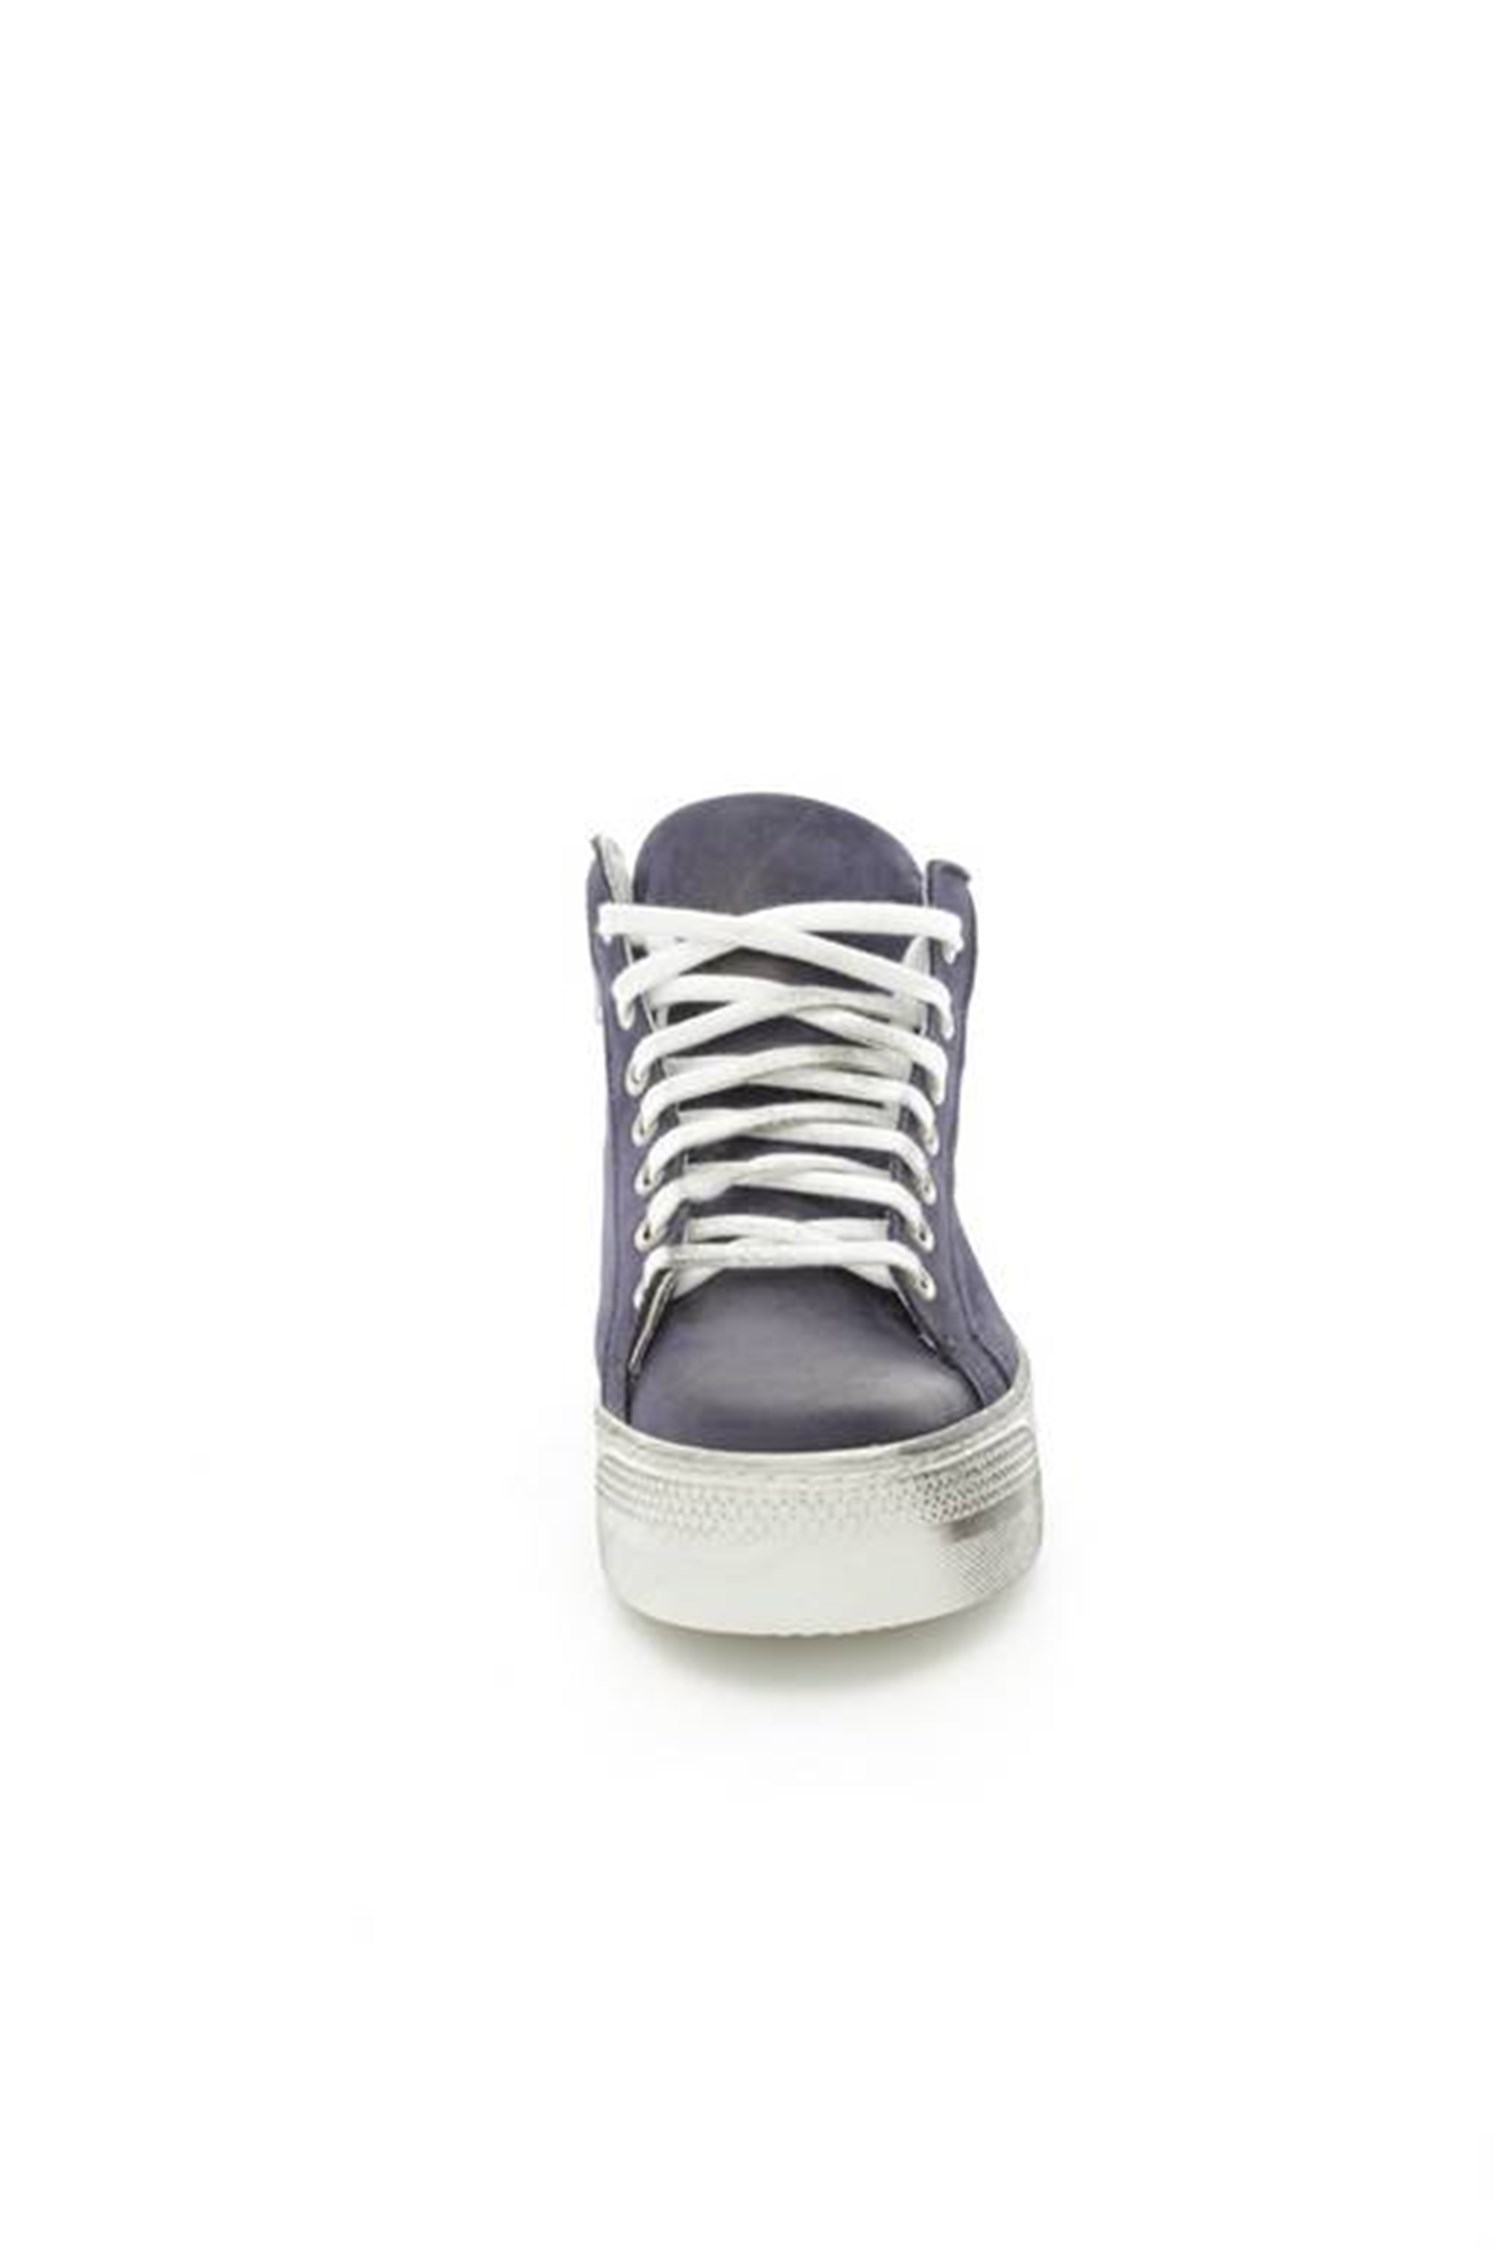 volta una 92 Donna Sneakers 2014 14 estate Primavera Ancora PS7xqEw5zw